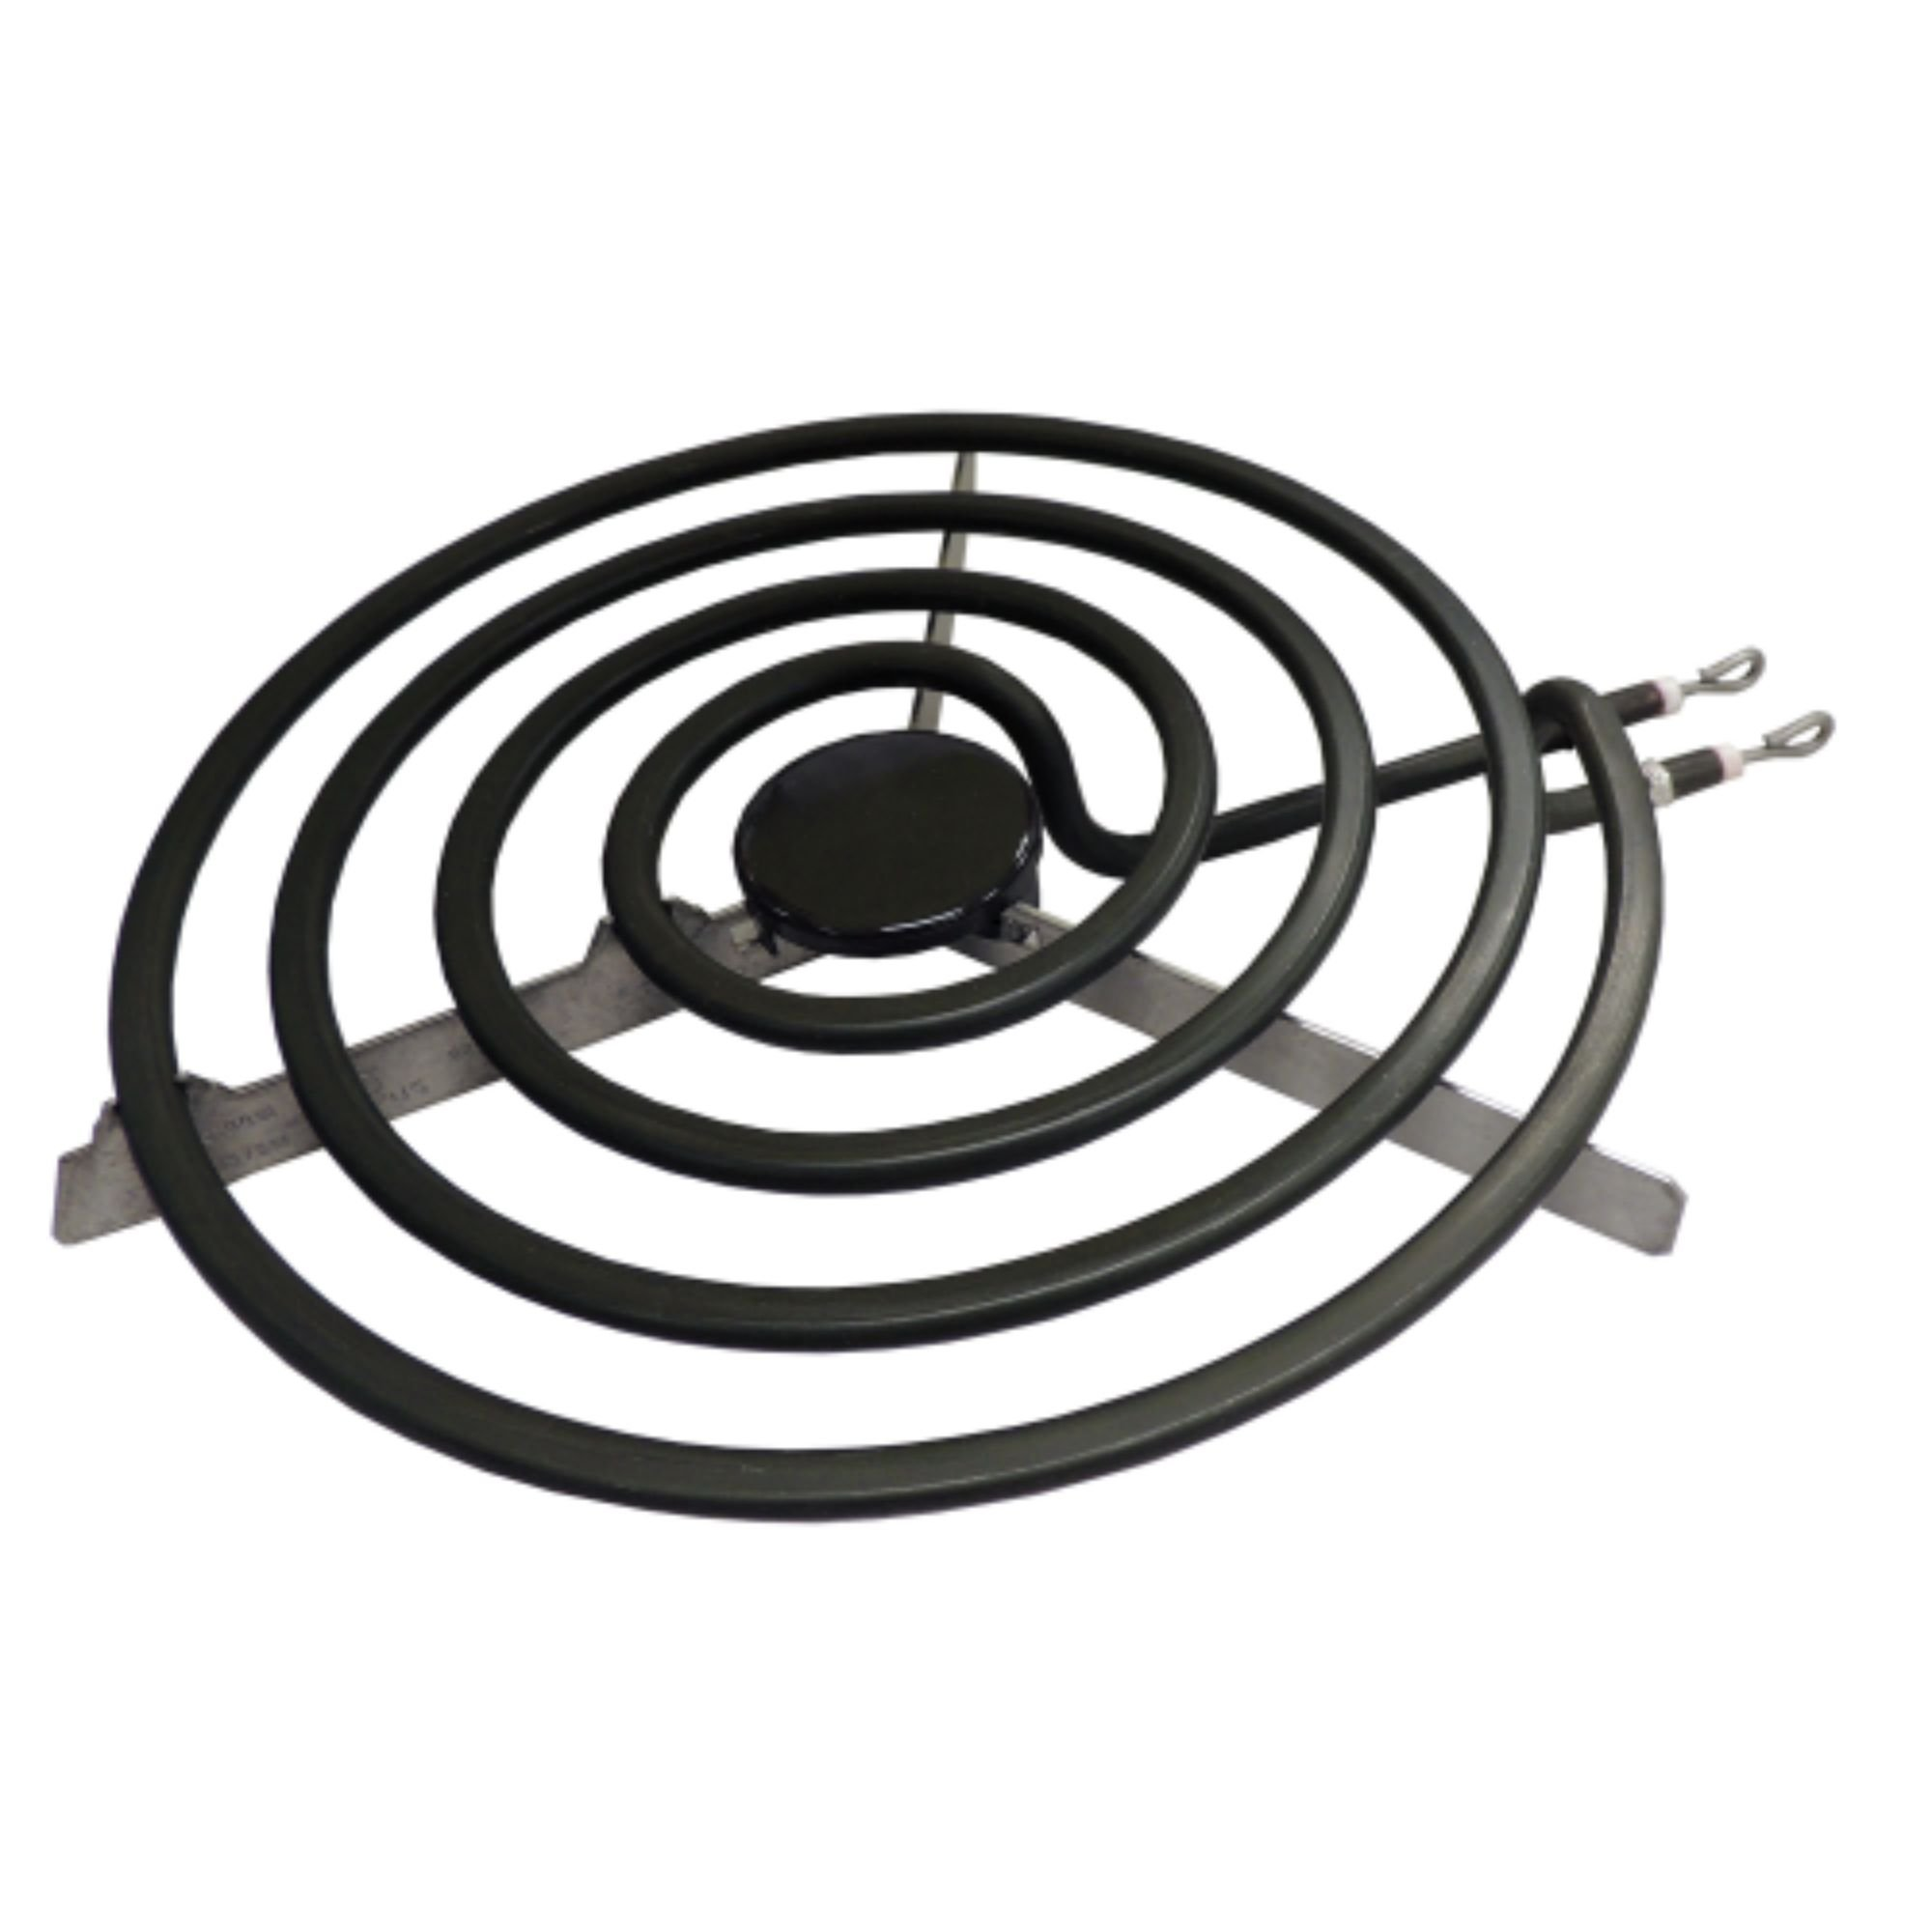 Supco SU202 Stove Surface Element Replacement for ERS48Y21, TJ90SP21YA, SP21YA, 814153